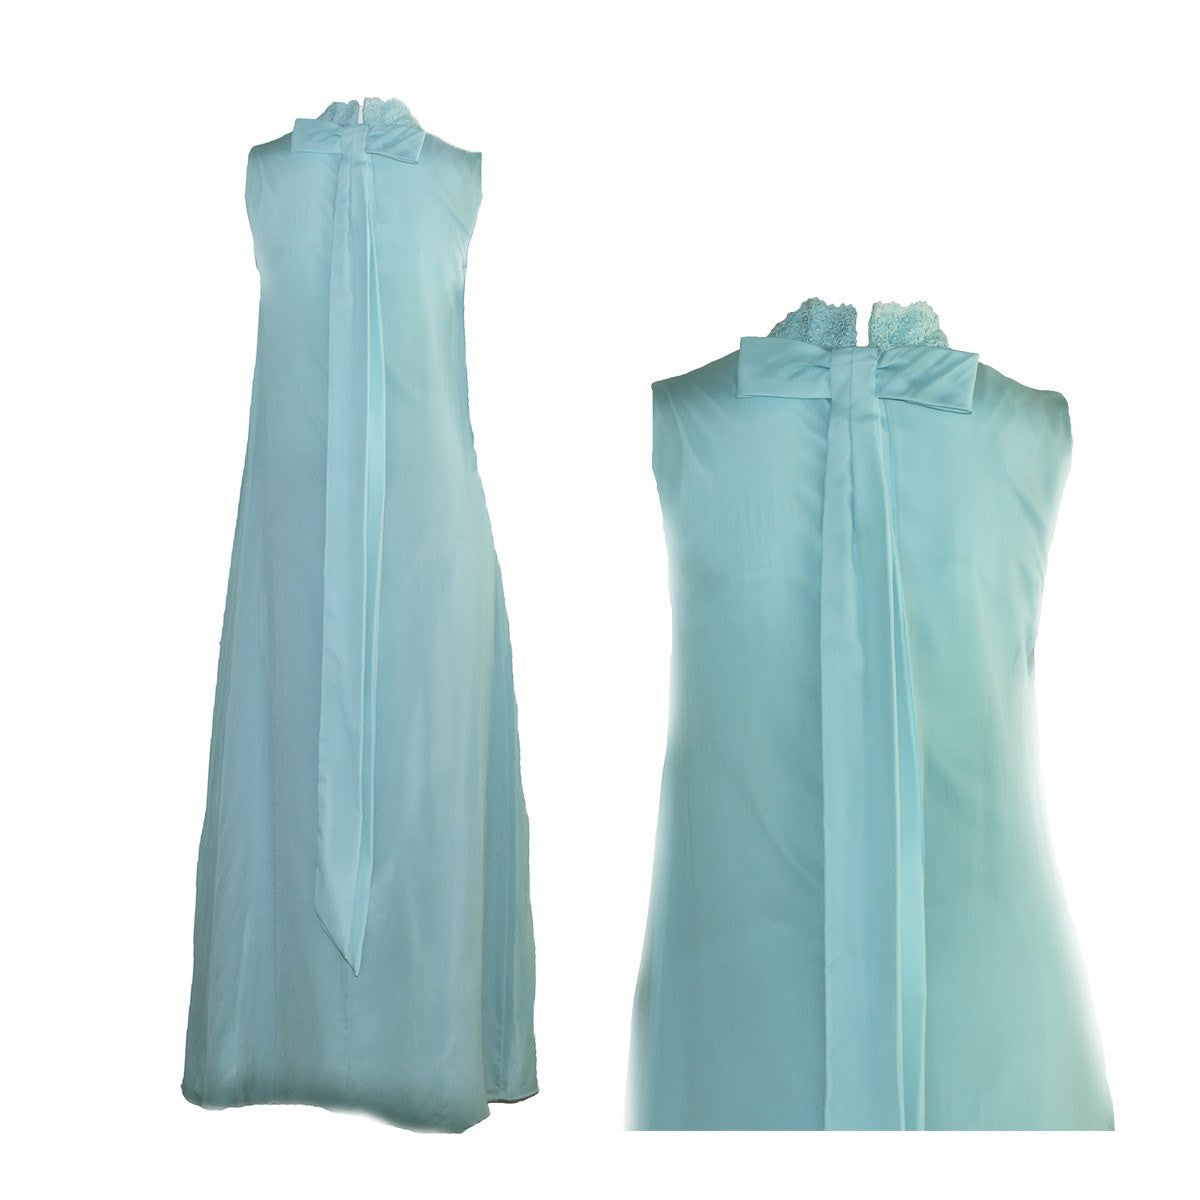 1970s aqua blue column gown 4